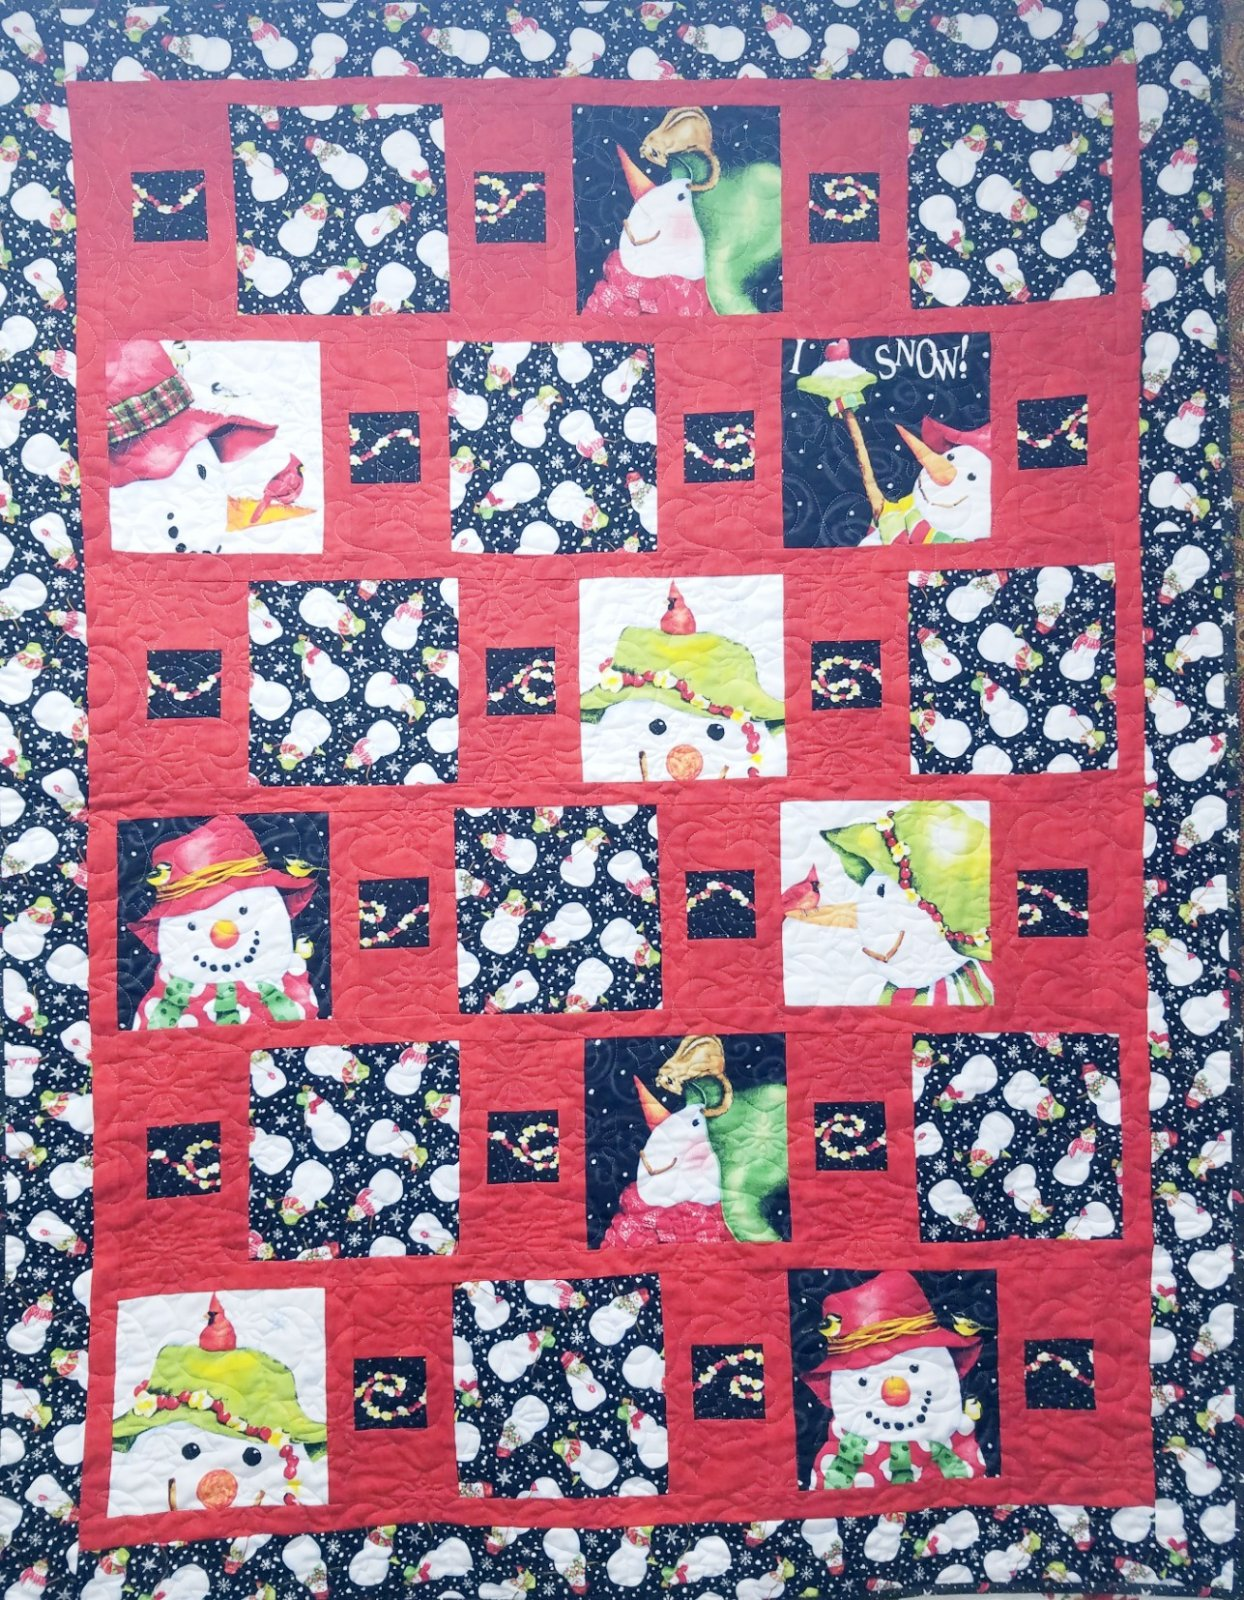 Easy Peasy Snowmen Quilt Kit w/Easy Peasy Pattern Book